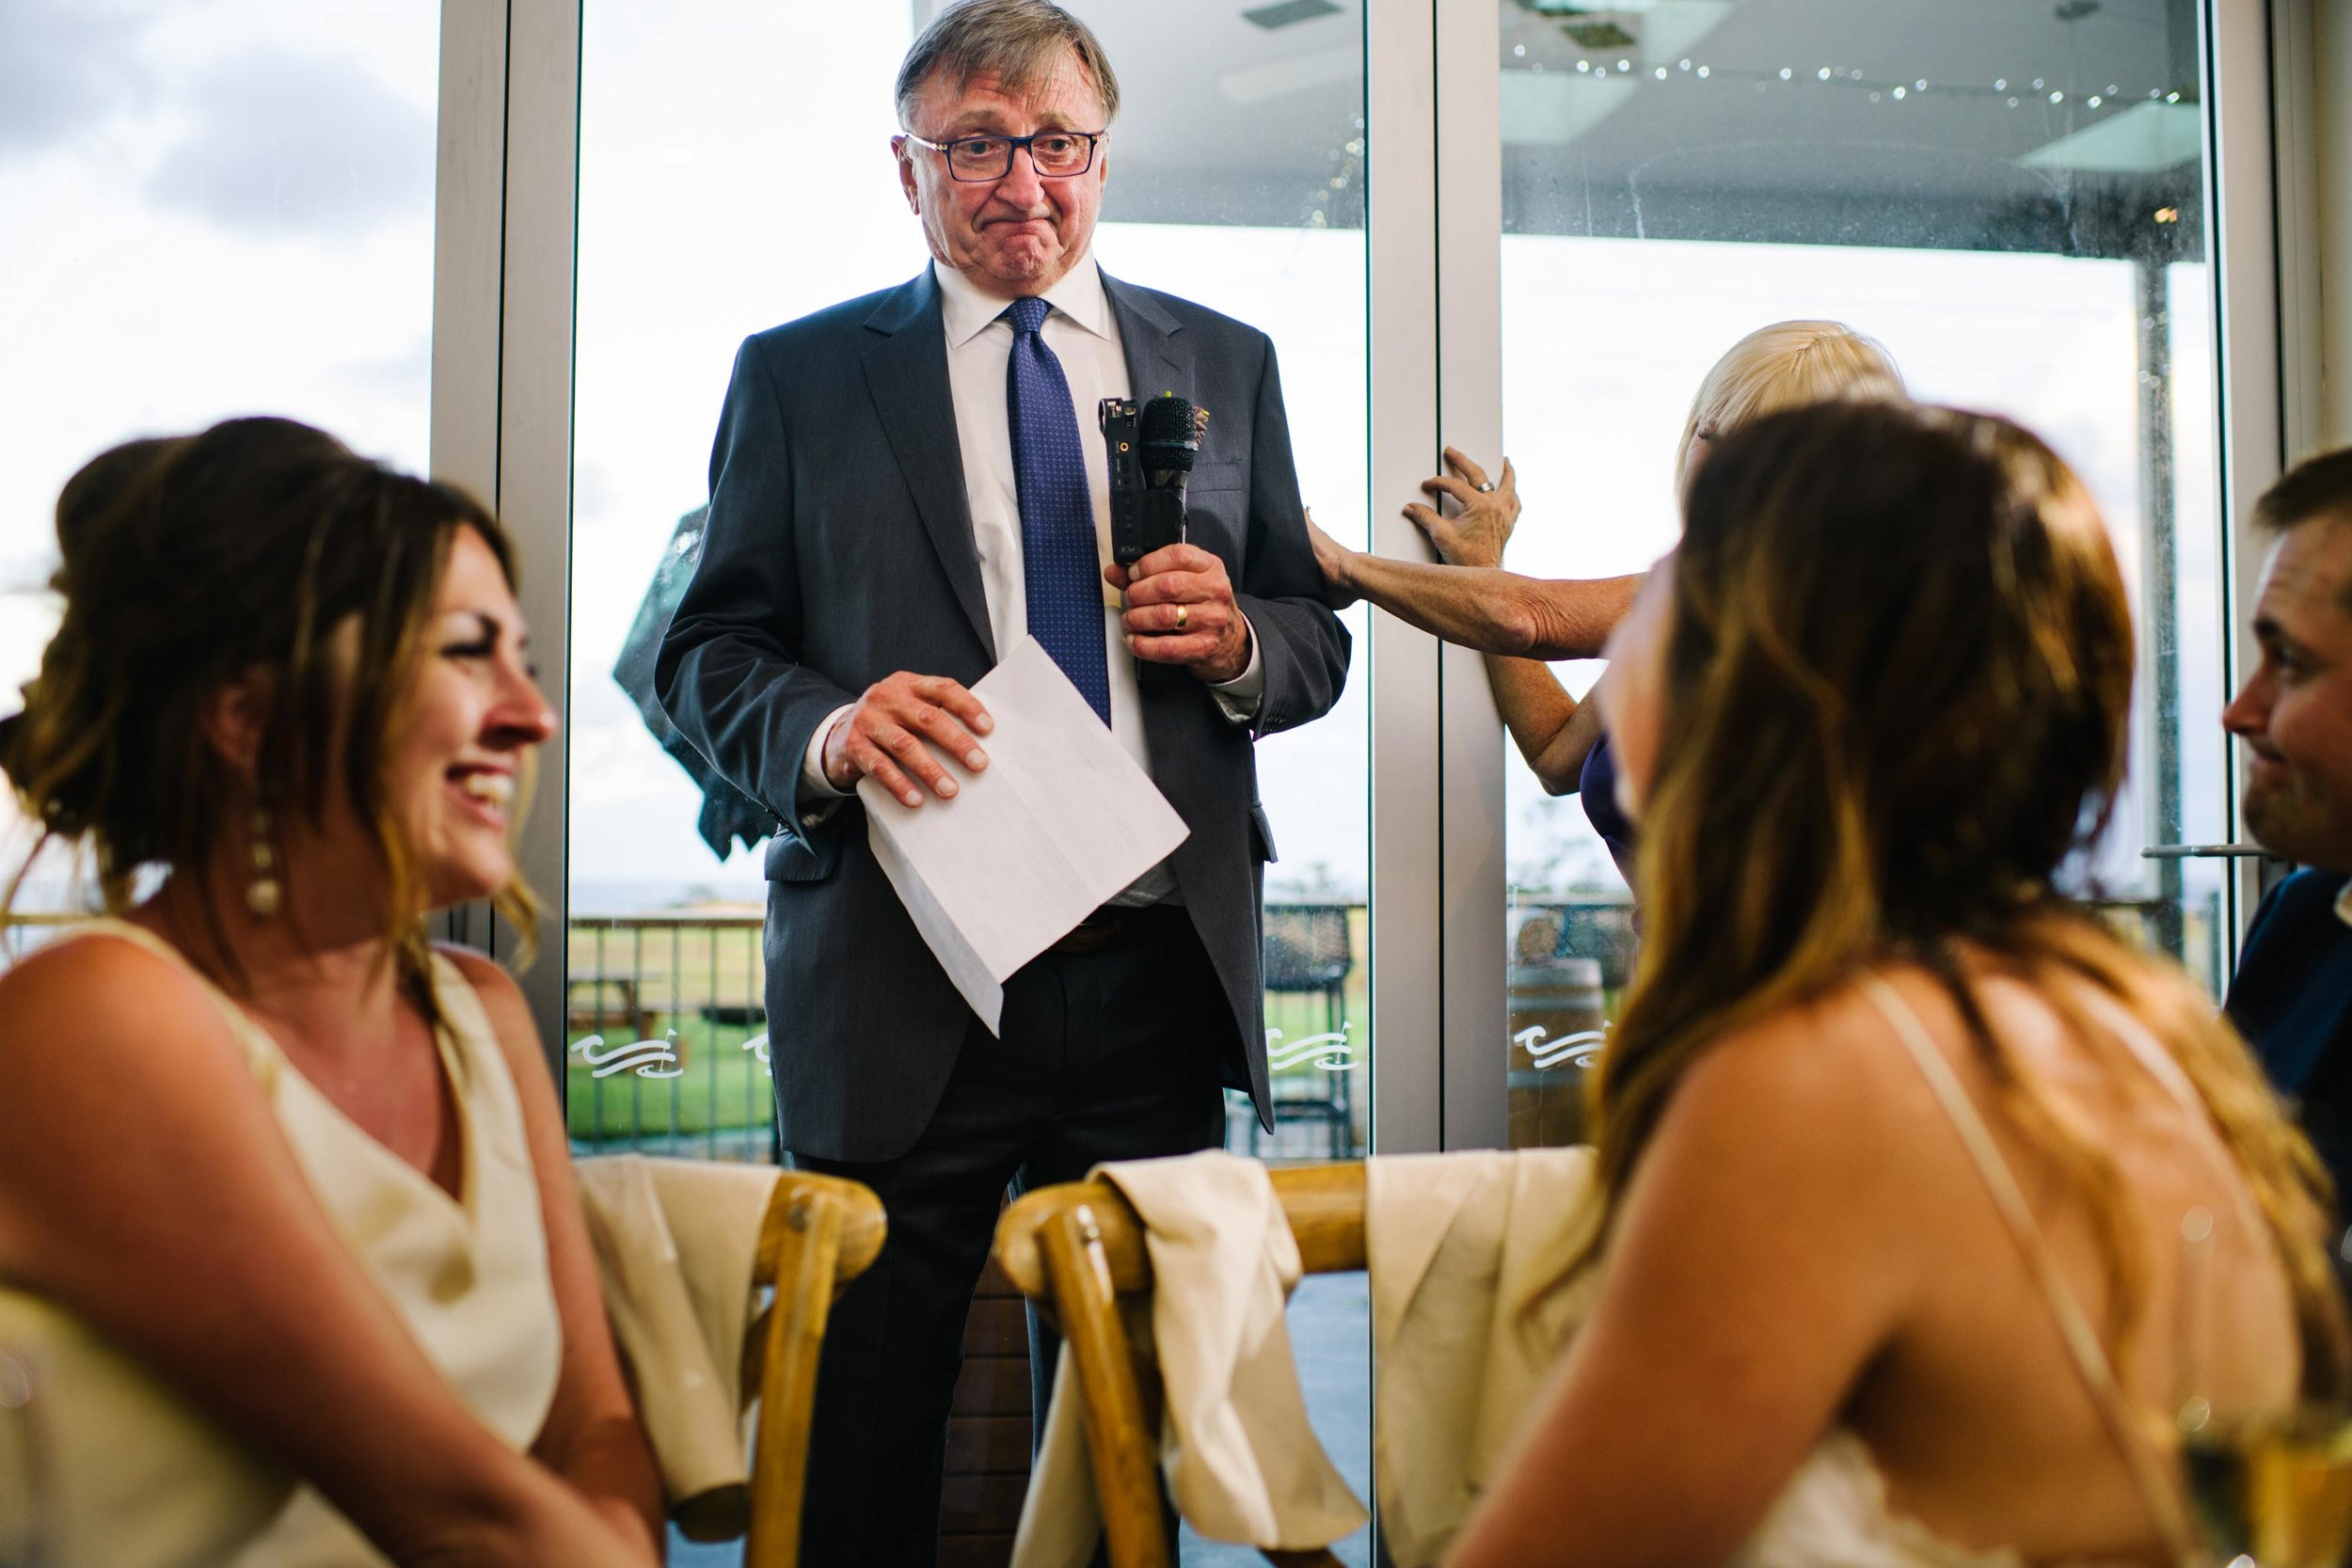 Father of the groom getting emotional during wedding speeches